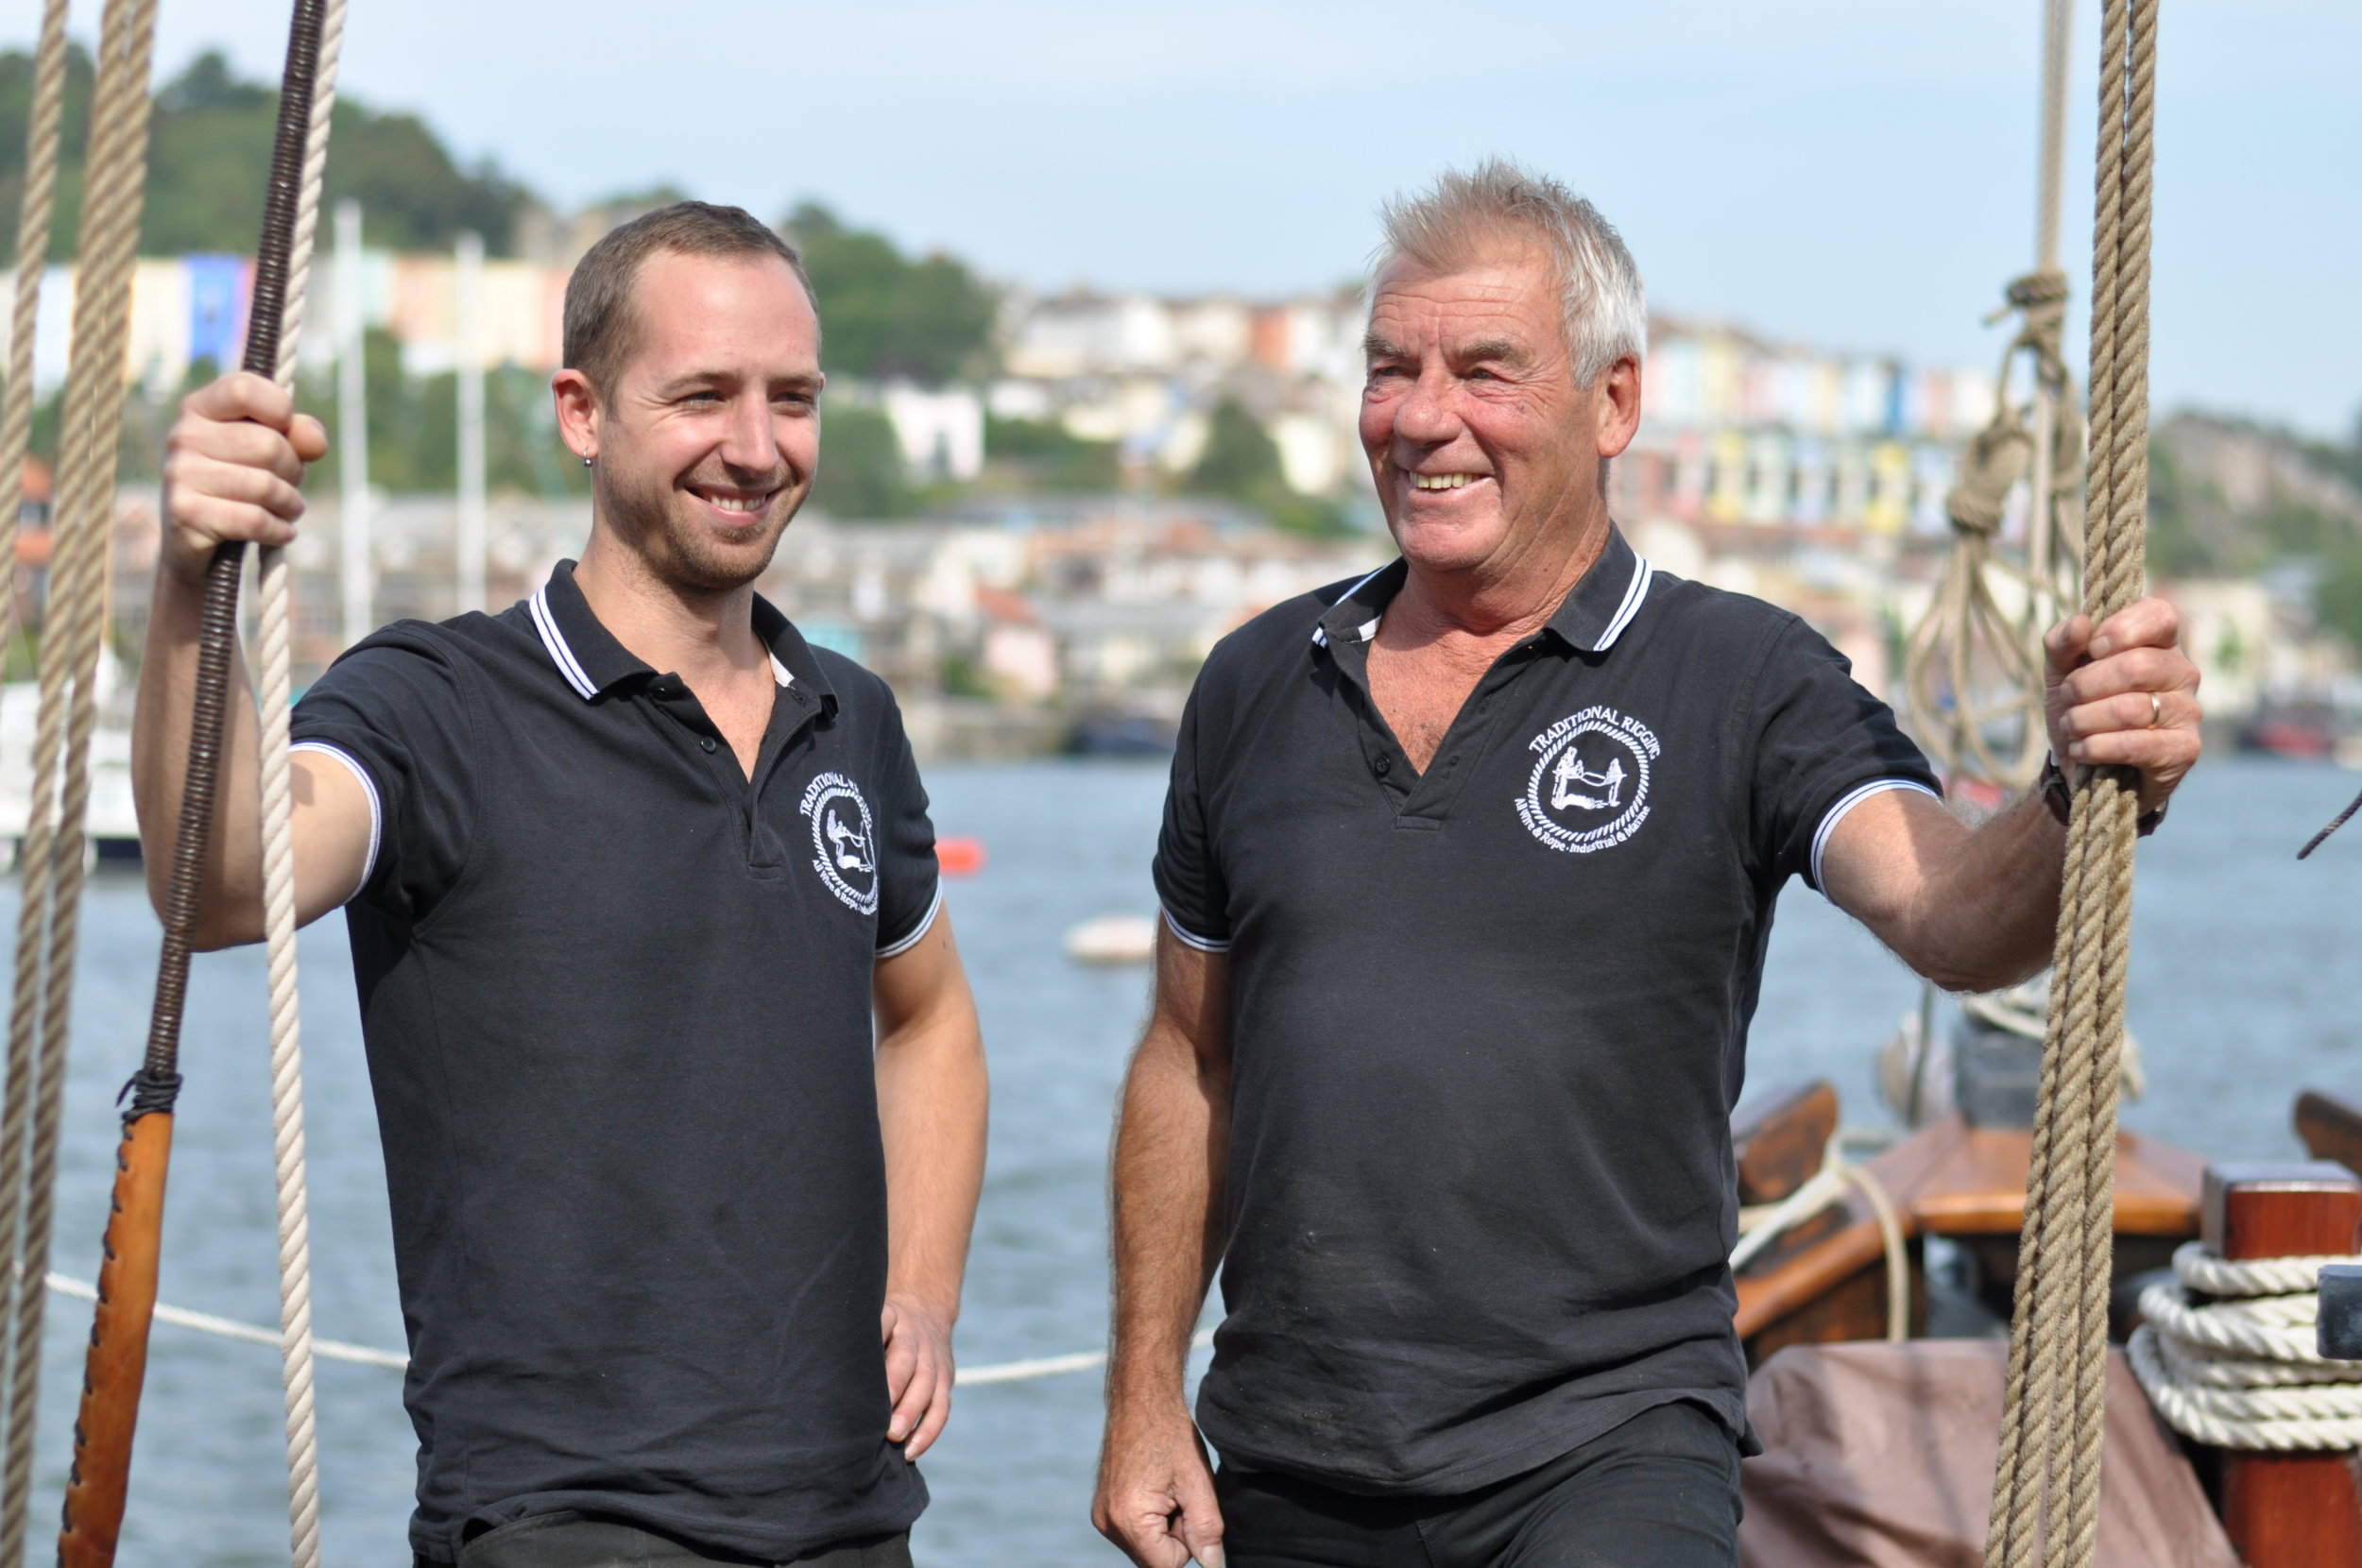 Jay Redman-Stainer and Dennis Platten of Traditional Rigging Bristol